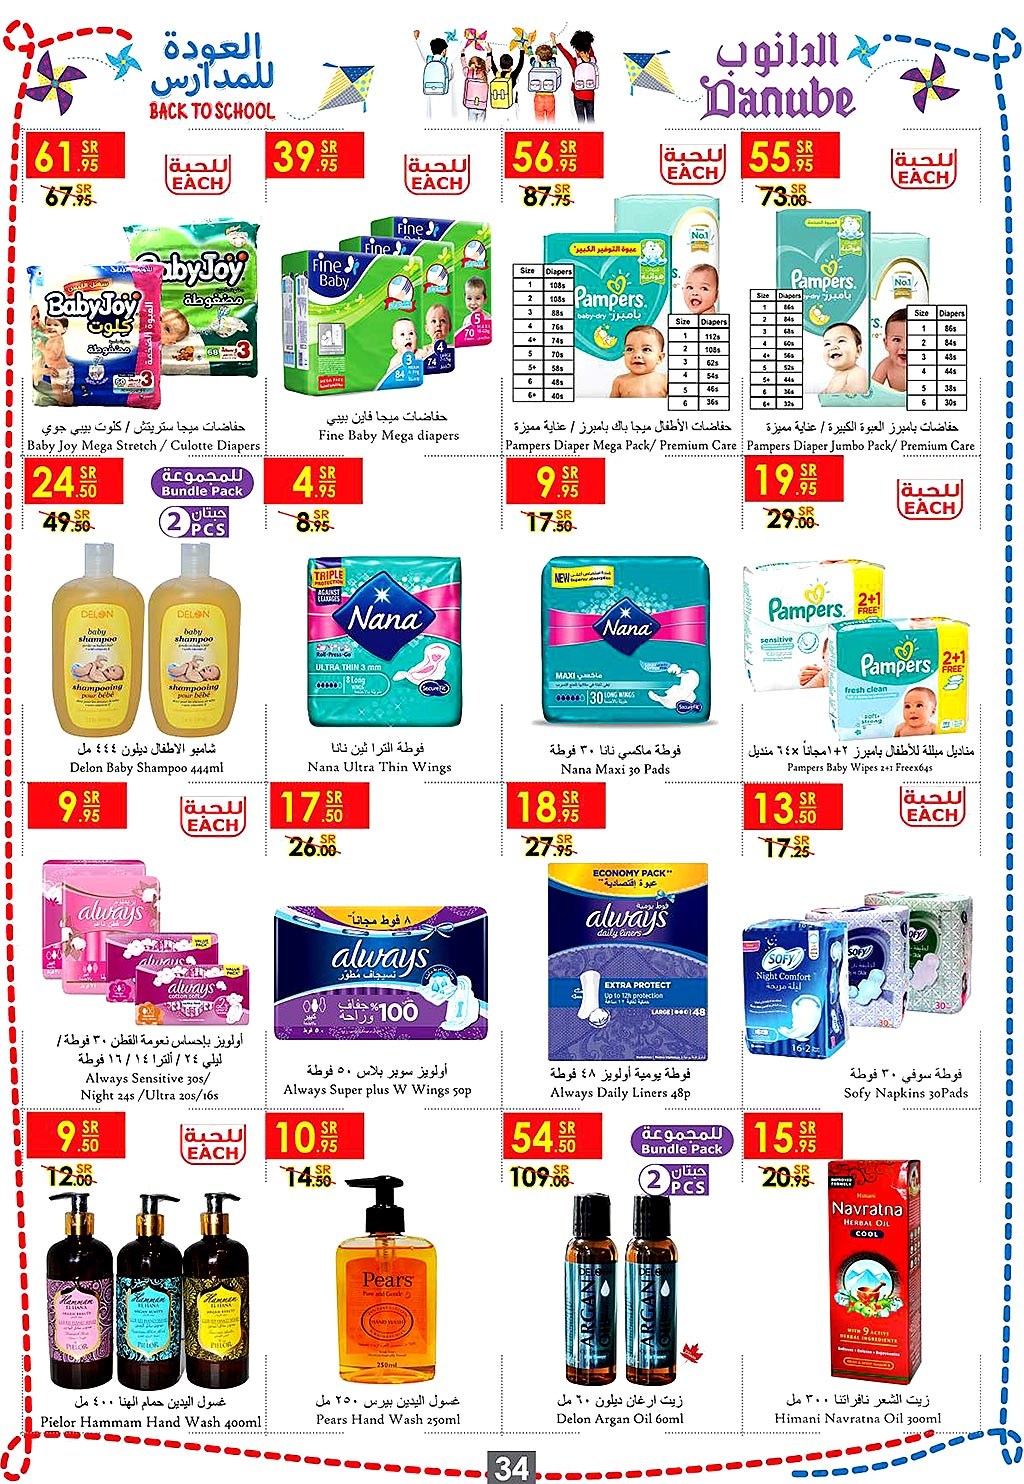 danube offers from 7aug to 21aug 2019 page number 33 عروض الدانوب من 7 أغسطس حتى 21 أغسطس 2019 صفحة رقم 33